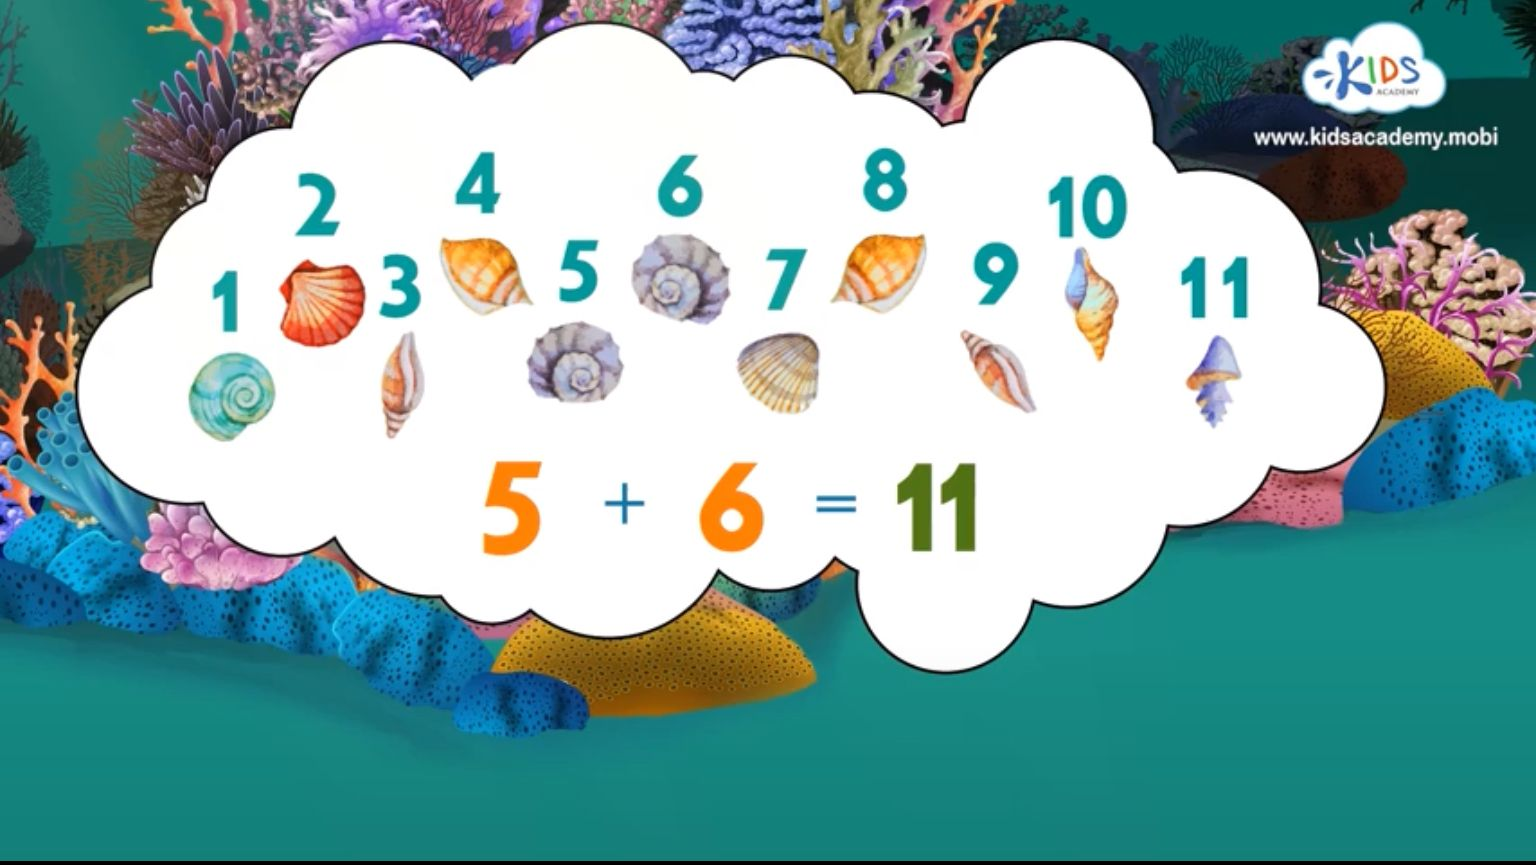 Addition Up To 20 Math For Kindergarten 1st Grade Kids Academy Youtube Kids Learning Apps Programming For Kids Addition Kindergarten [ 865 x 1536 Pixel ]